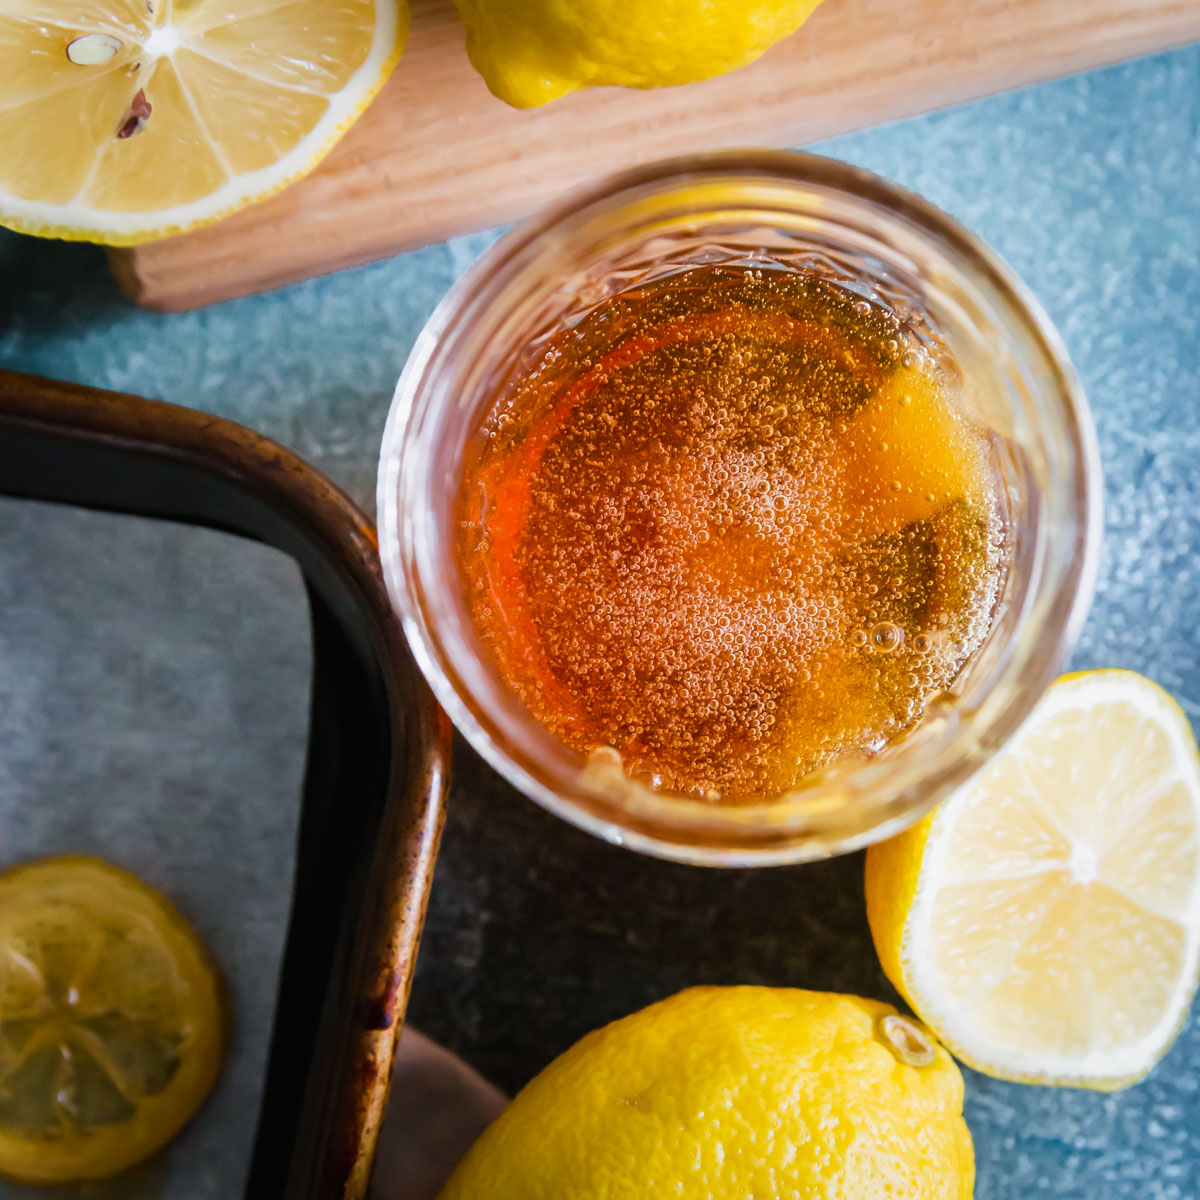 Leftover lemon flavored simple syrup from making candied lemon slices can be jarred and saved for future use!